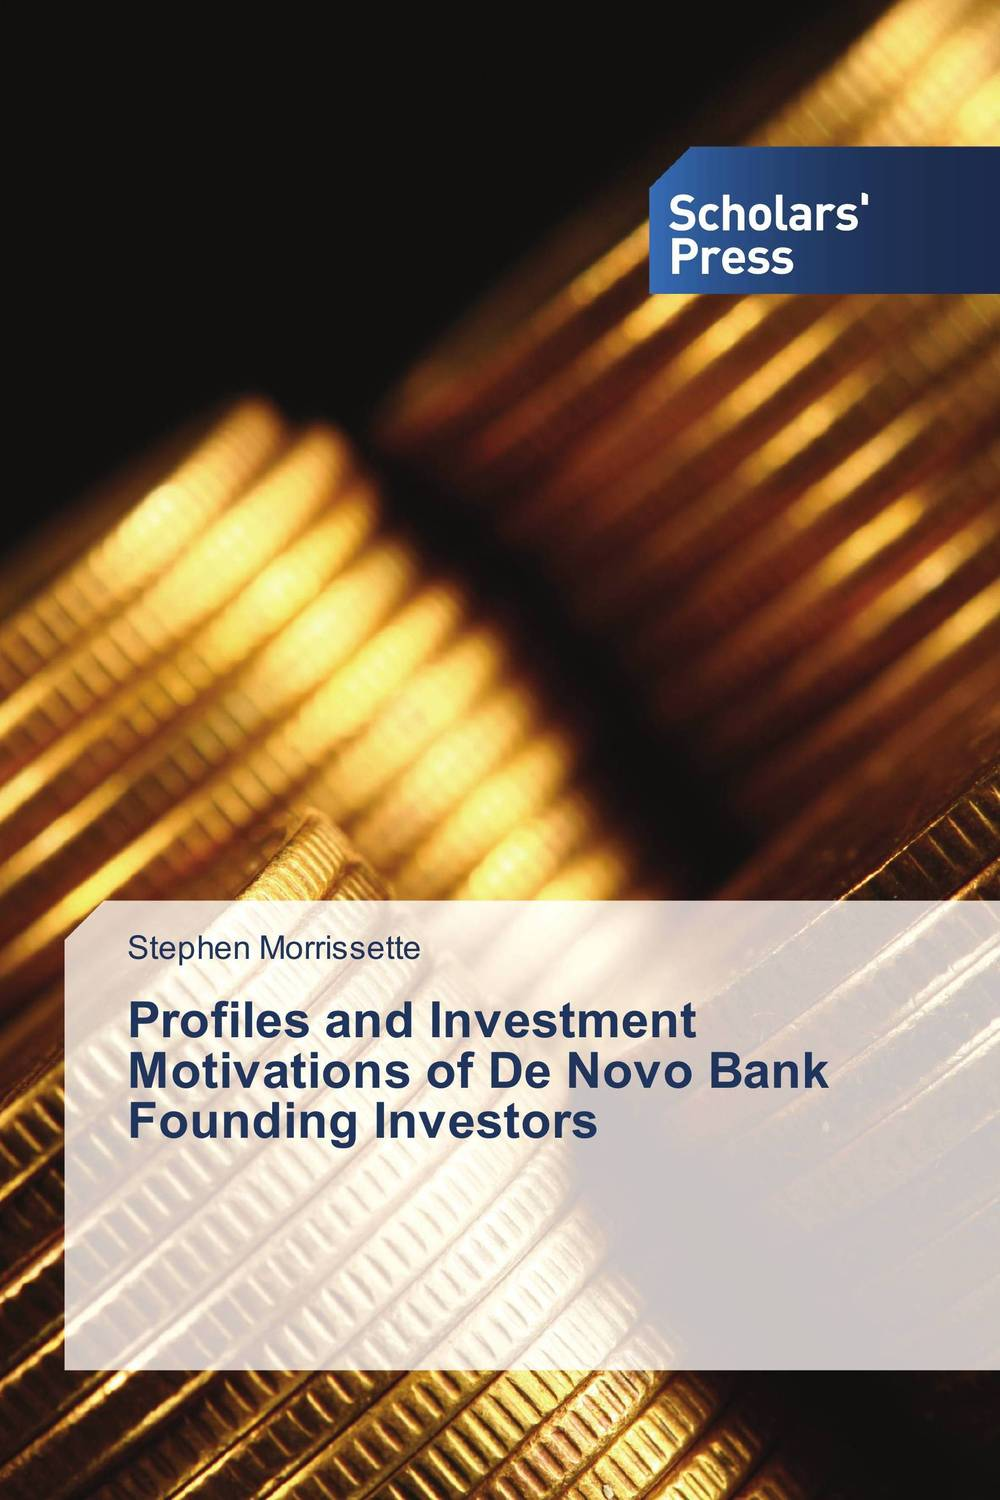 Profiles and Investment Motivations of De Novo Bank Founding Investors